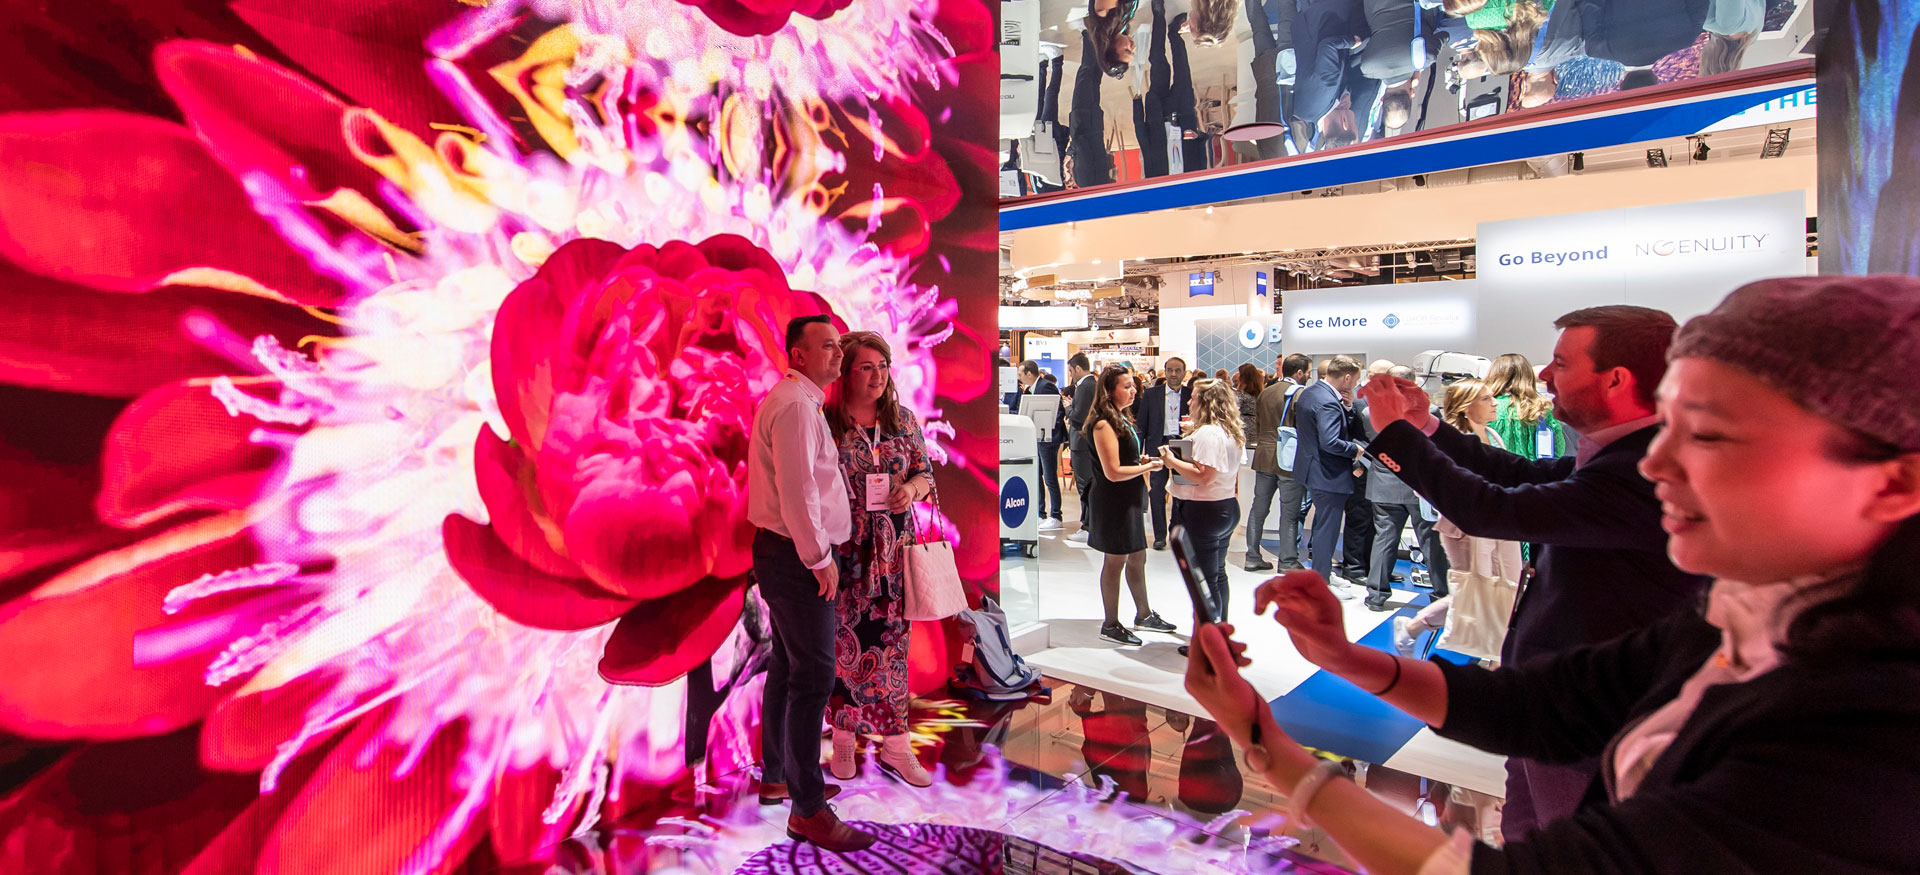 Immersive video technology within live event exhibition design for Alcon, by MCCGLC